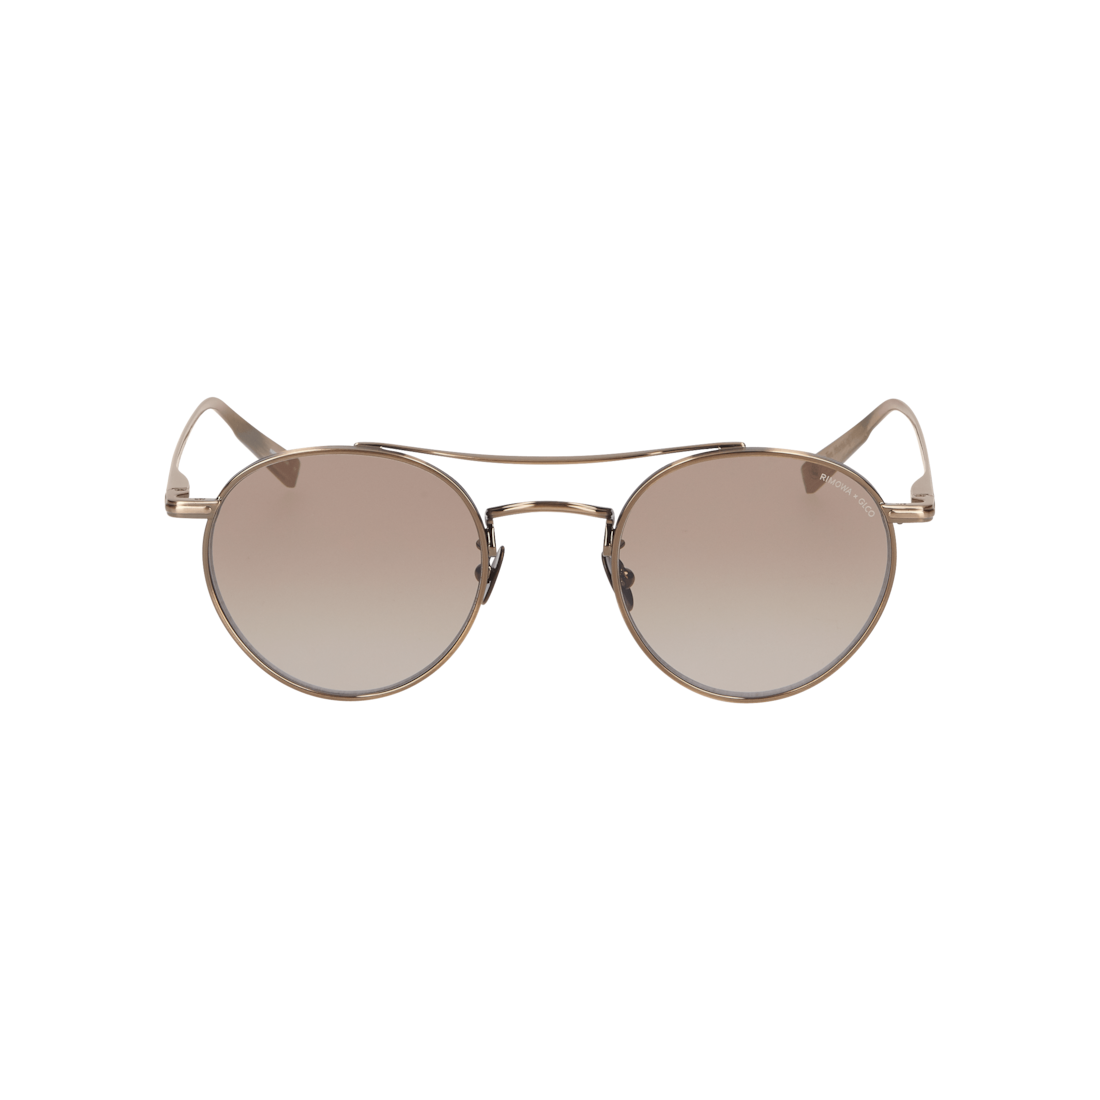 Sunglasses in Brushed Gold Metal